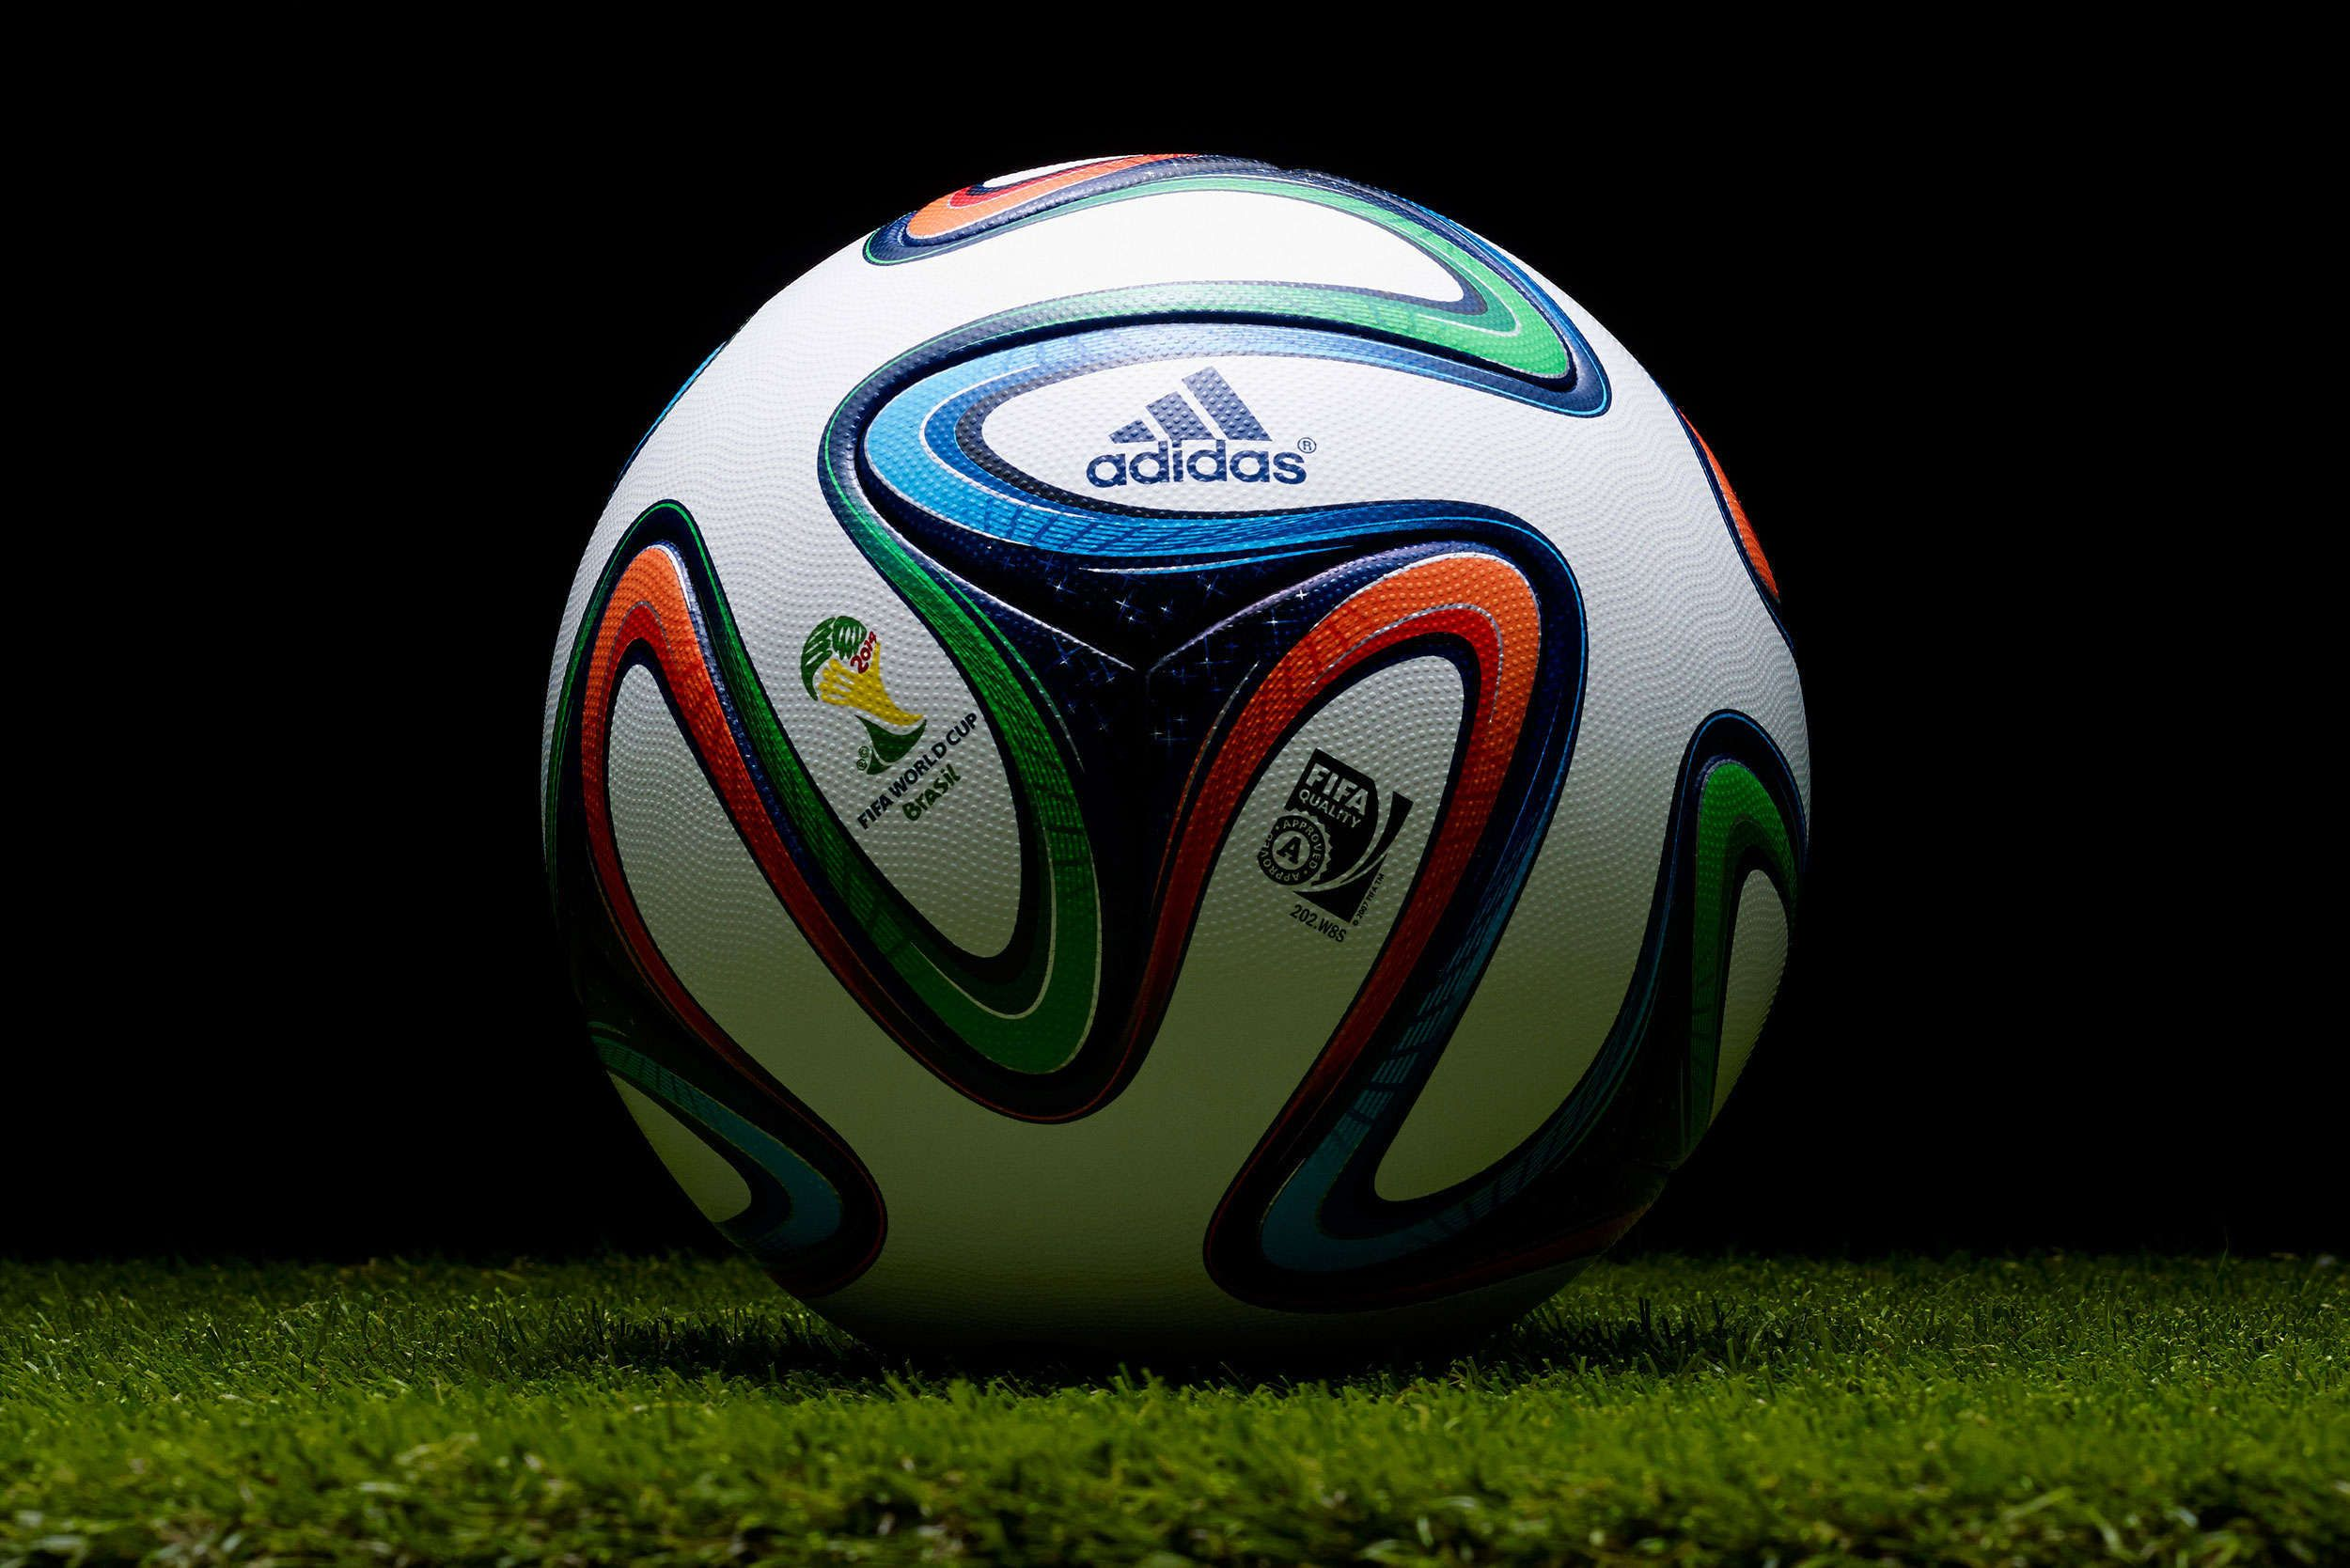 Football Wallpapers HD Backgrounds Images Pics Photos 2500x1668